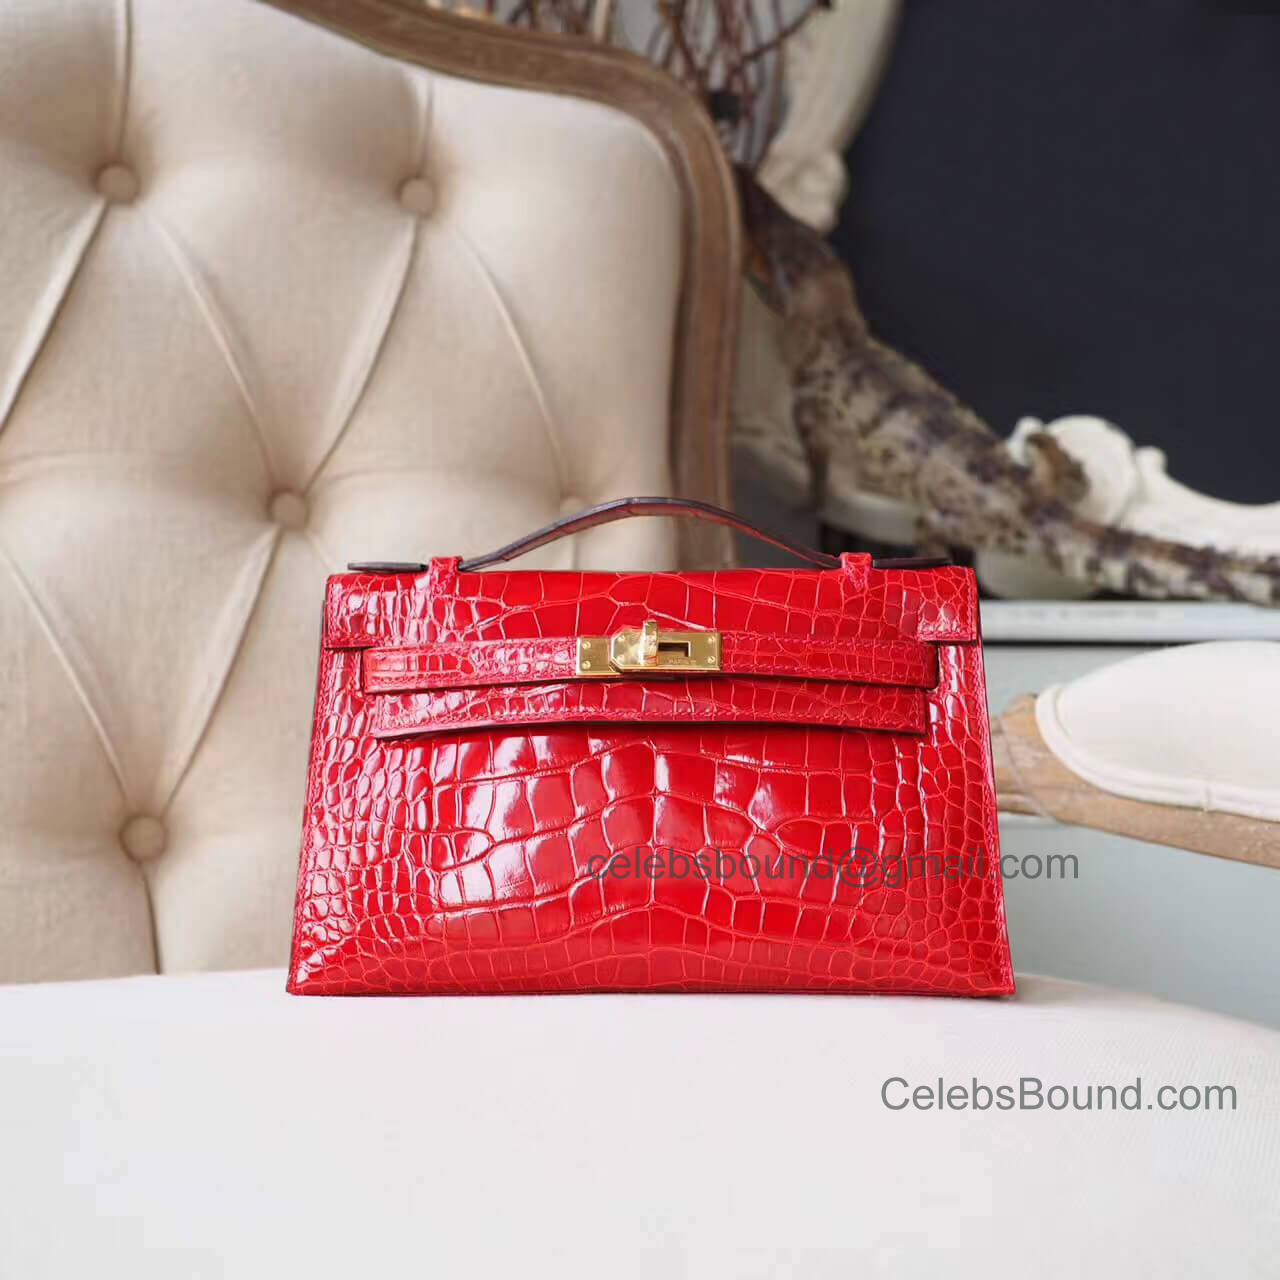 Replica Hermes Mini Kelly 22 Pochette Bag in d5 Geranium Shiny Alligator GHW